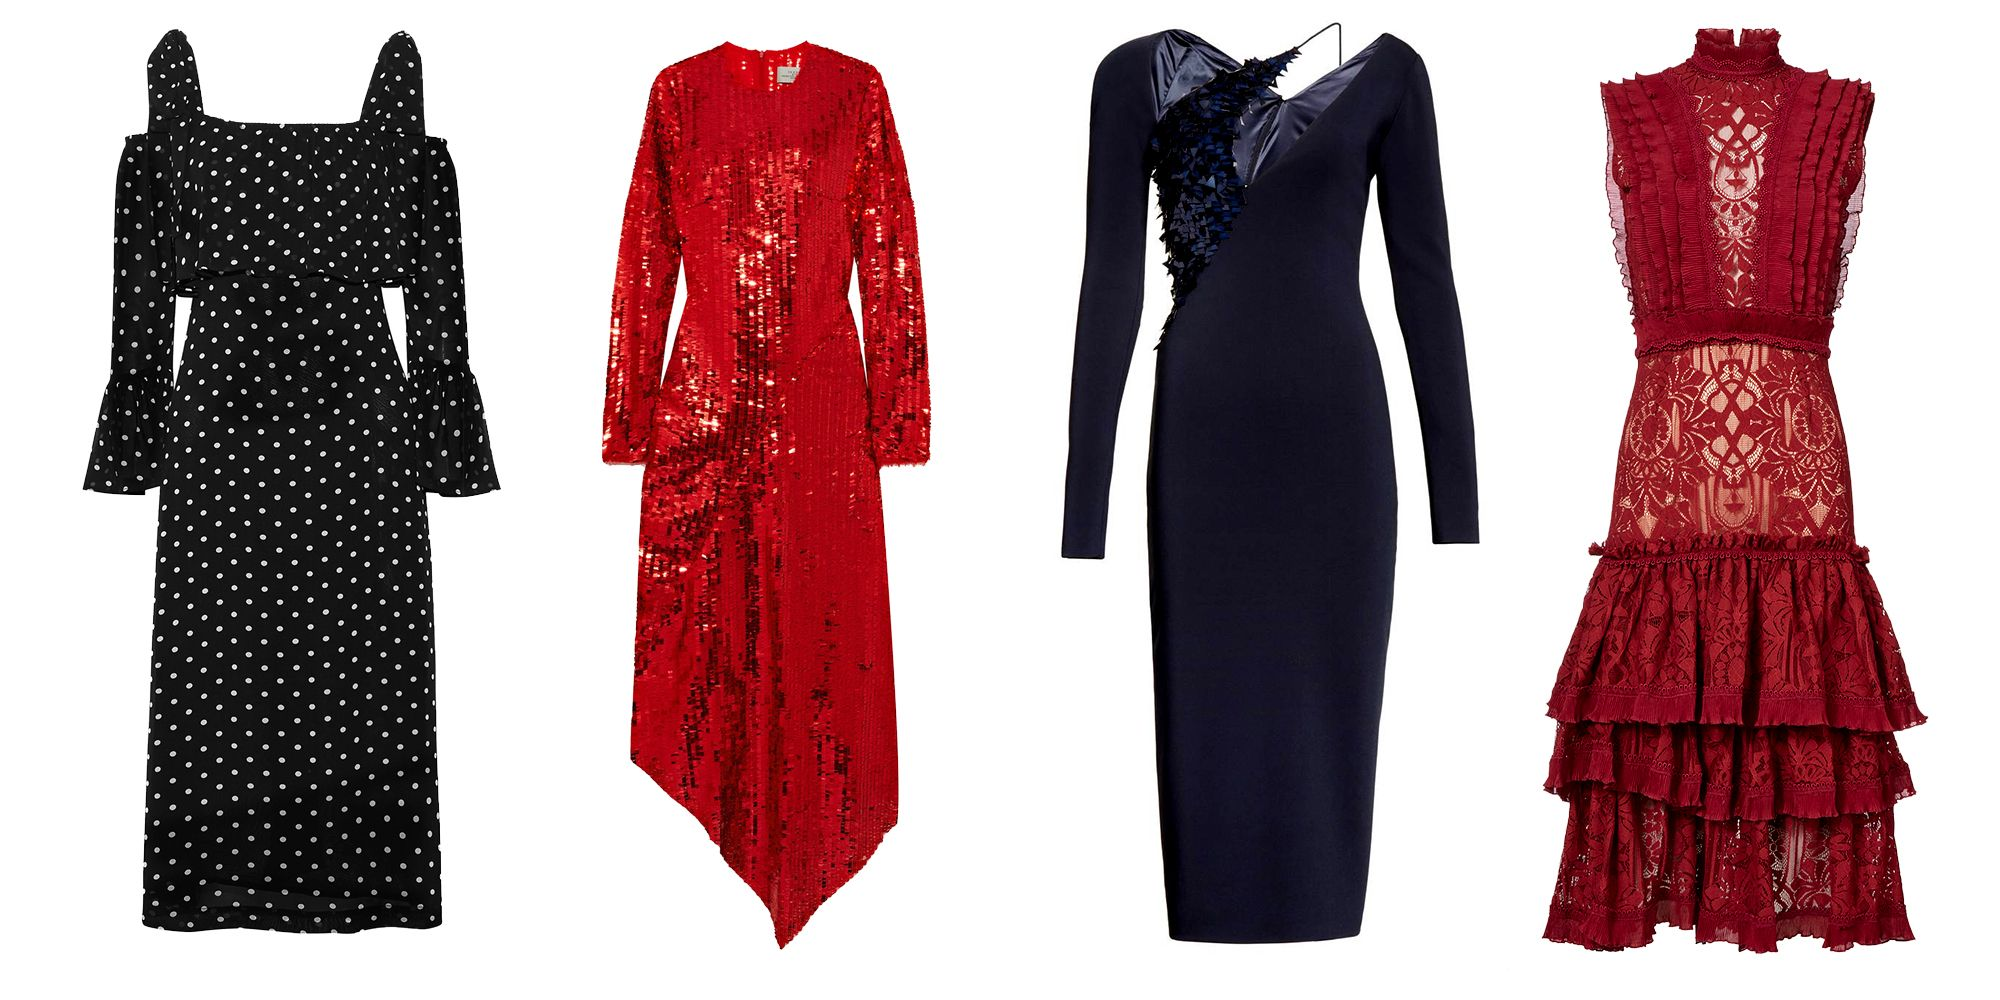 21 Guest Dresses For a Winter Wedding - What To Wear As Wedding Guest